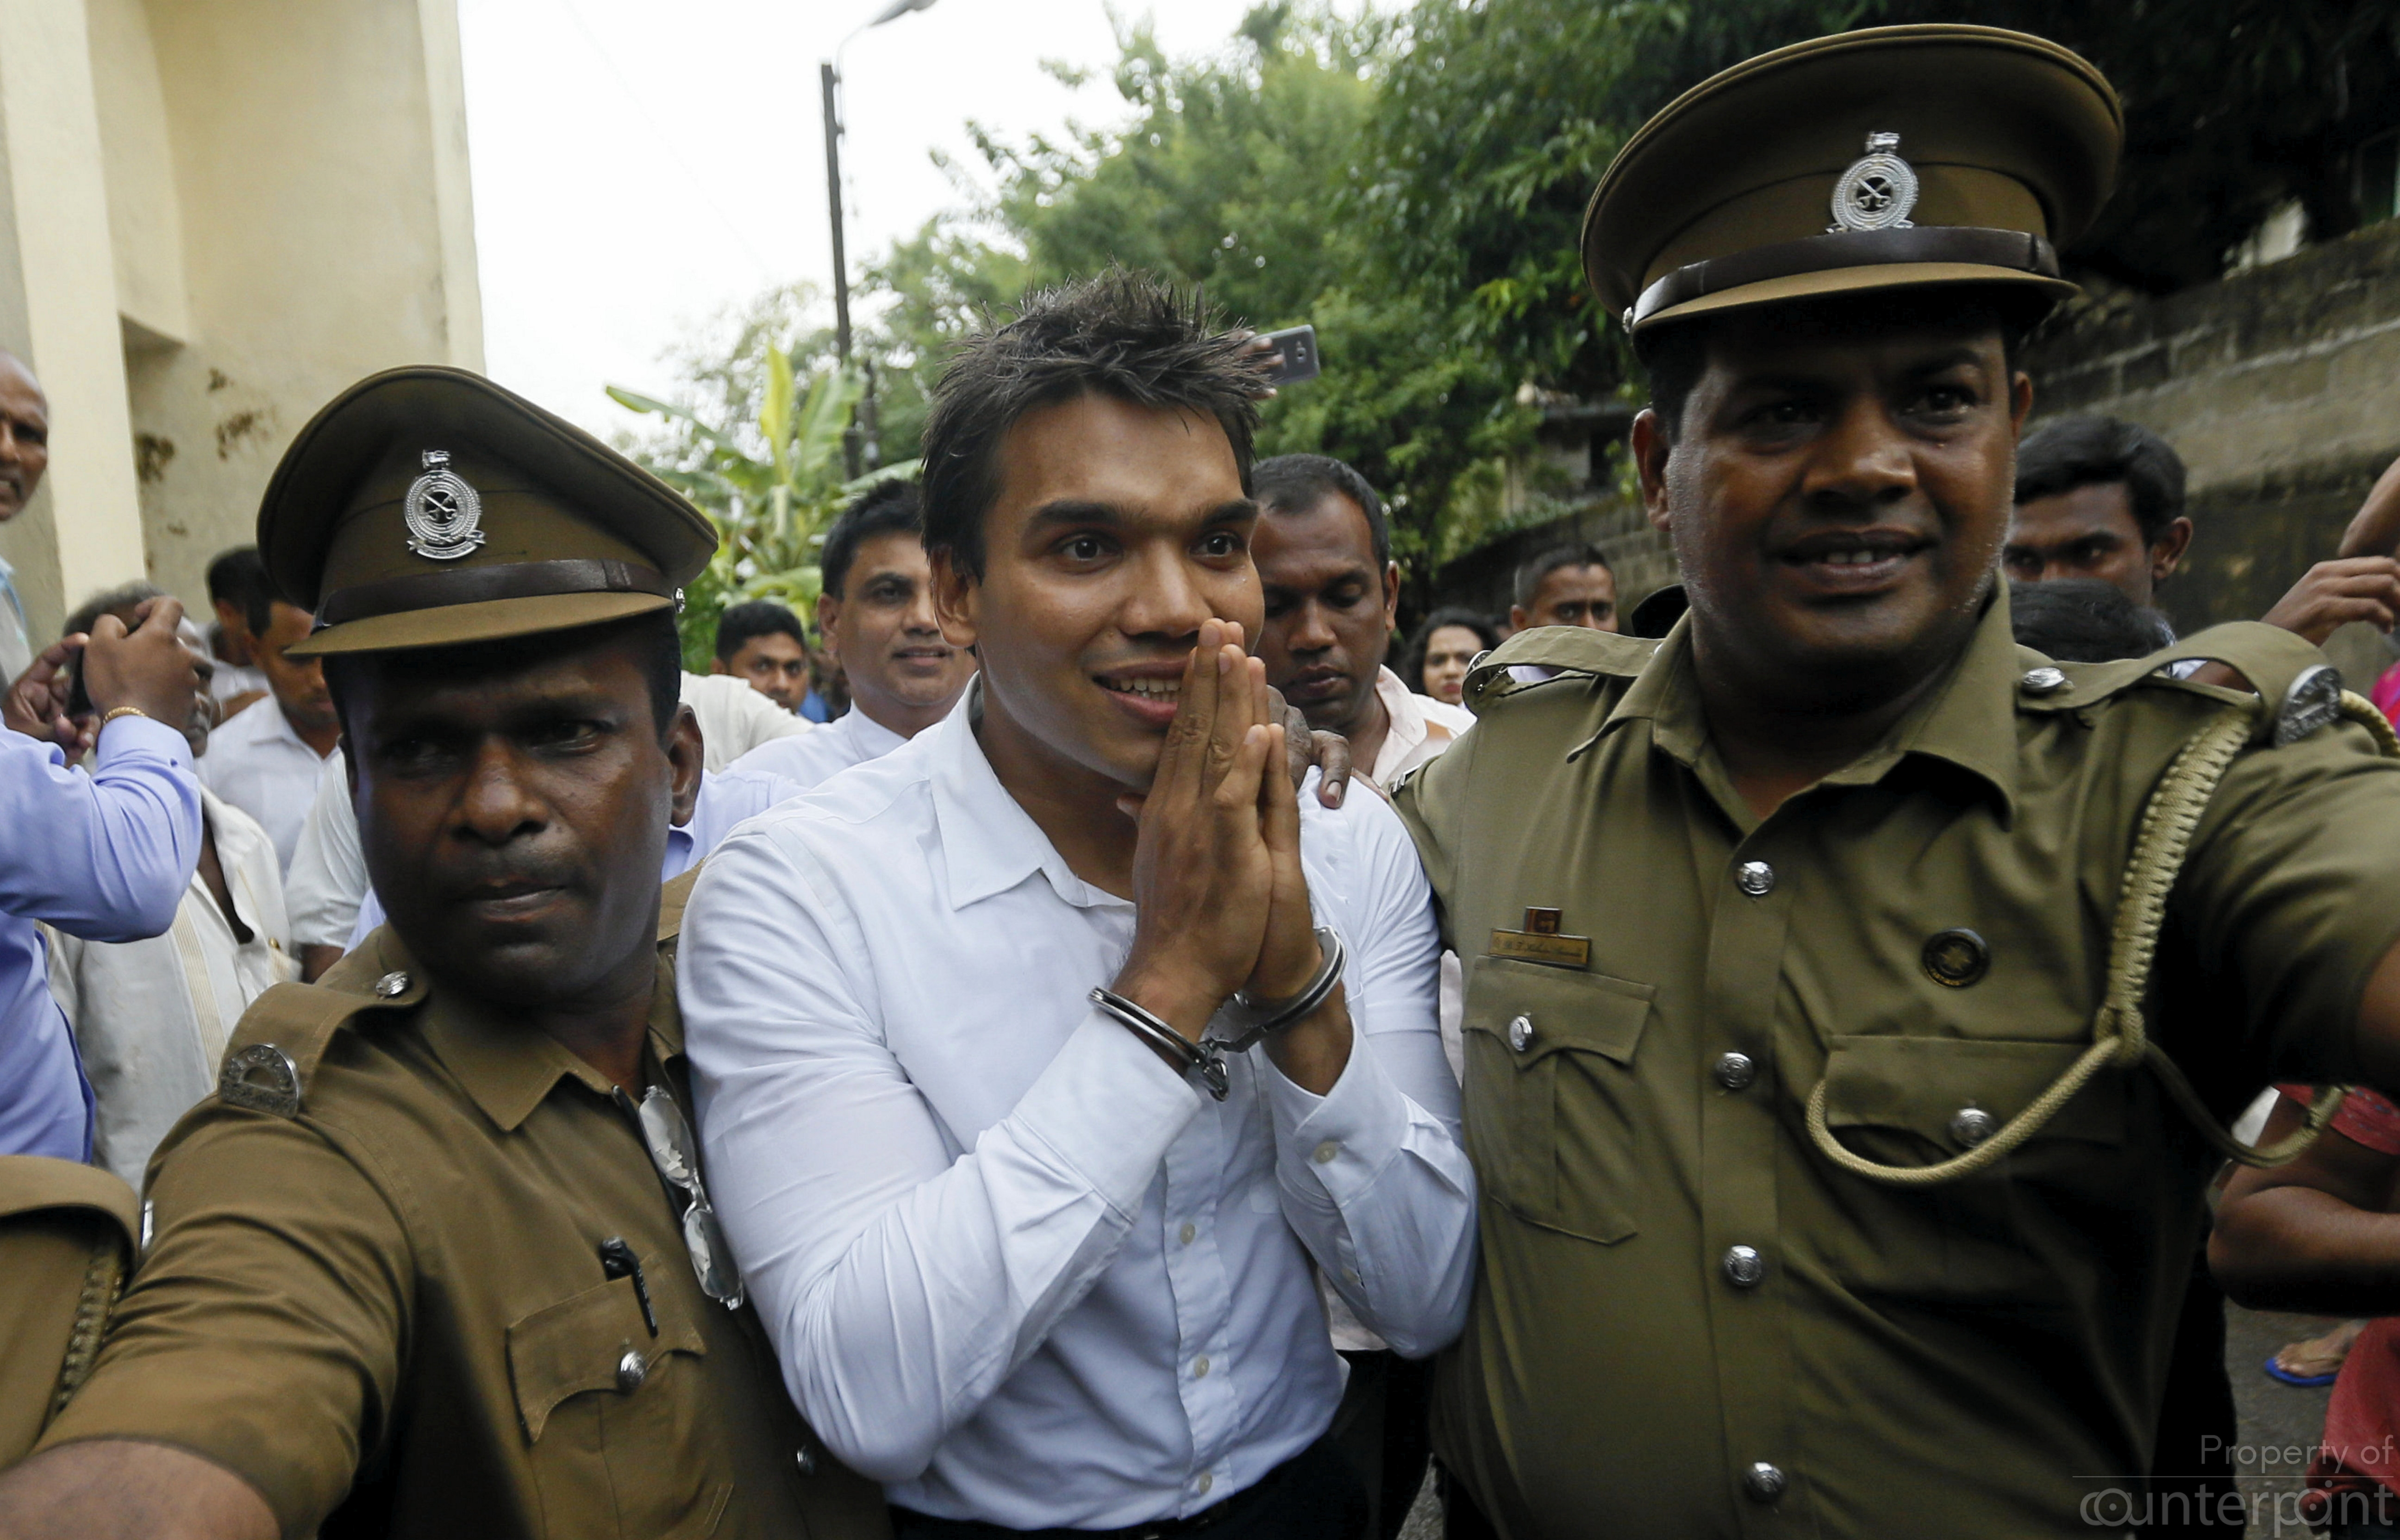 MP Namal Rajapaksa was arrested in 2016 on charges of money laundering.